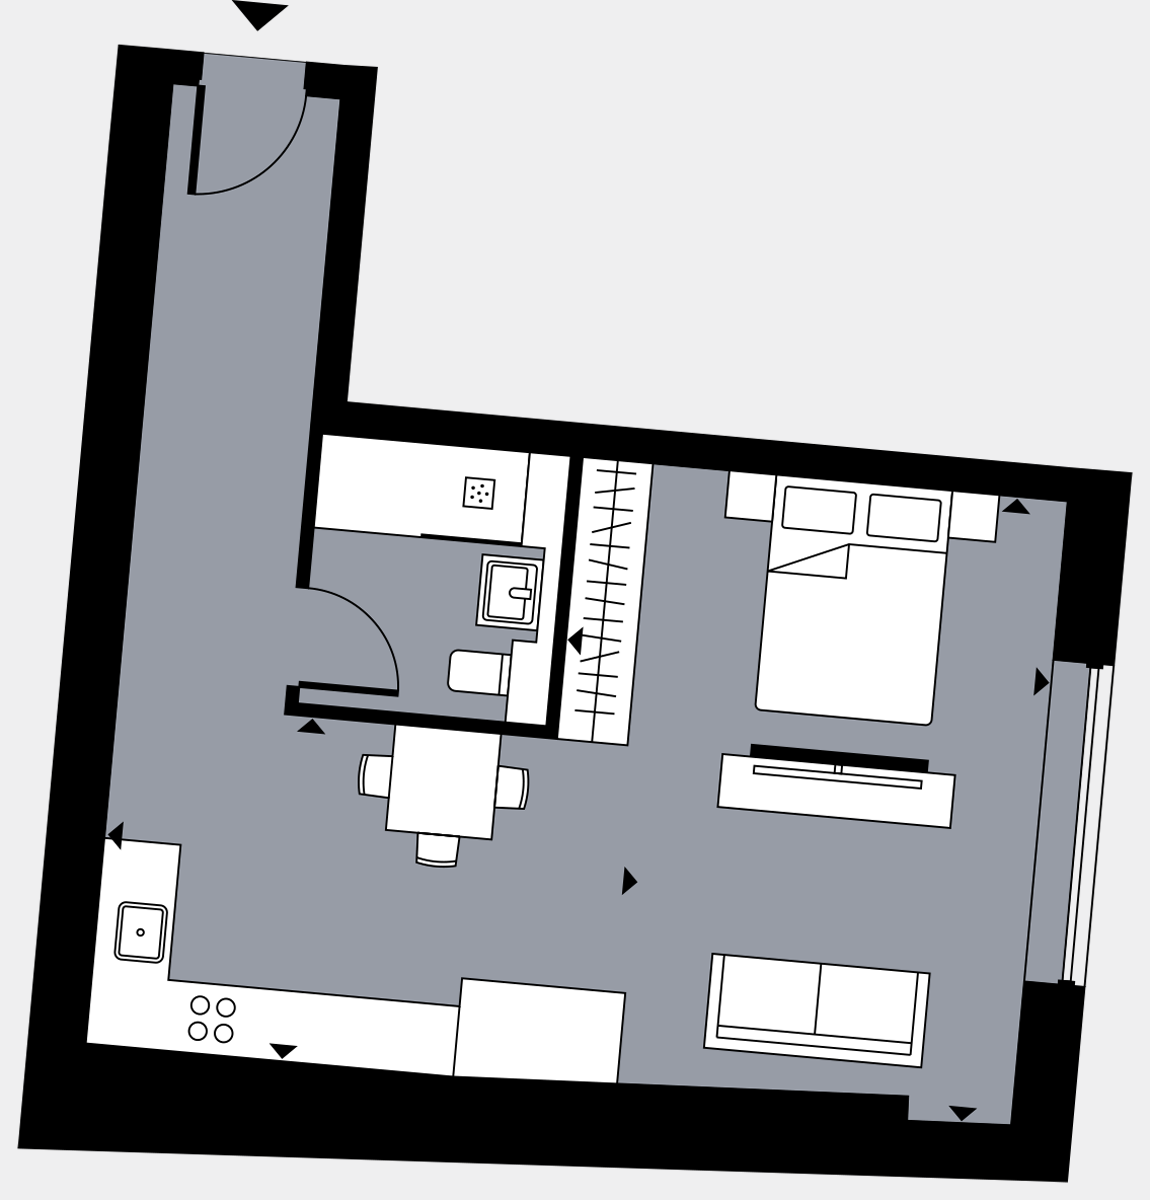 Brigade Court London SE1 Apartment floorplan - L4 34 Davies House